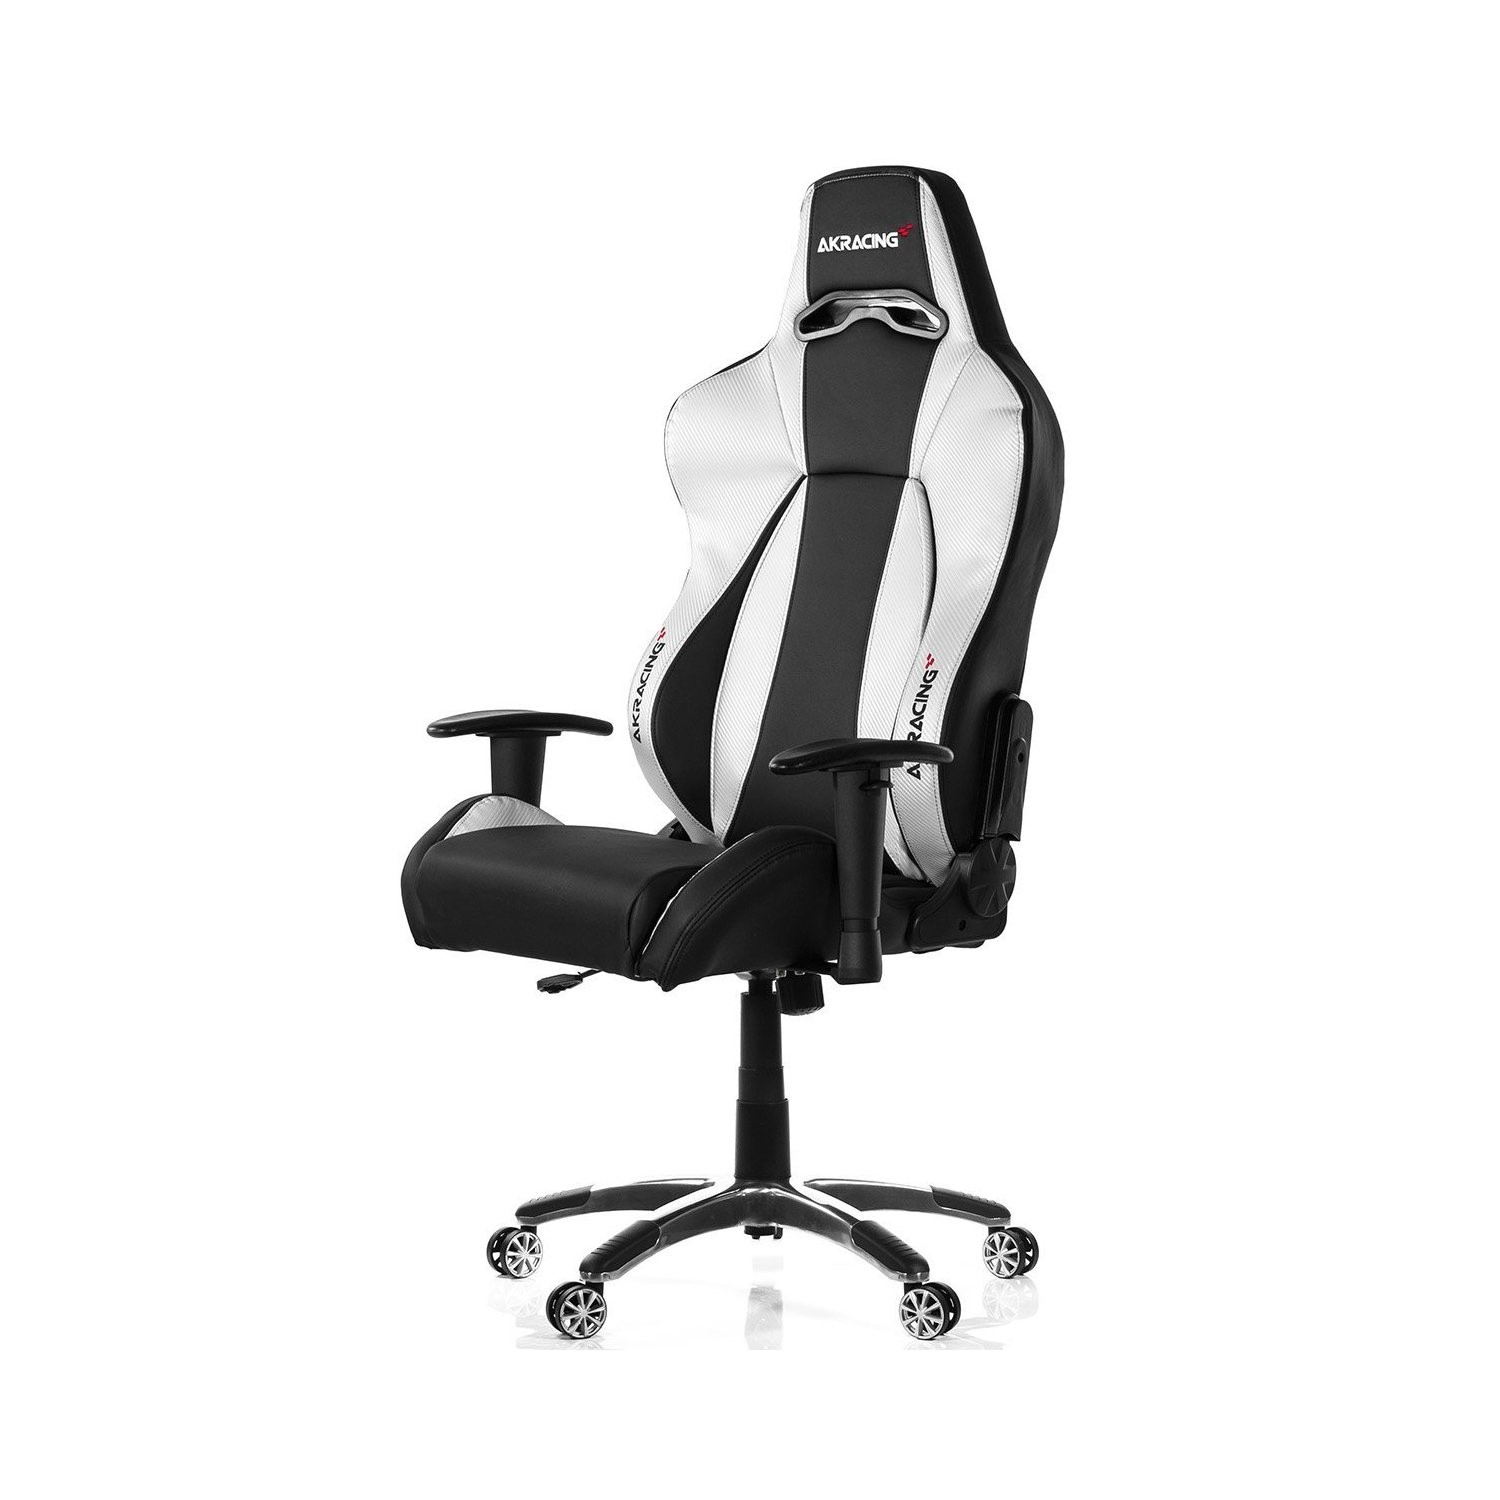 AK Racing K7002 Premium Gaming Chair - Black/Silver  sc 1 st  Laptops Direct & AK Racing K7002 Premium Gaming Chair - Black/Silver - Laptops Direct